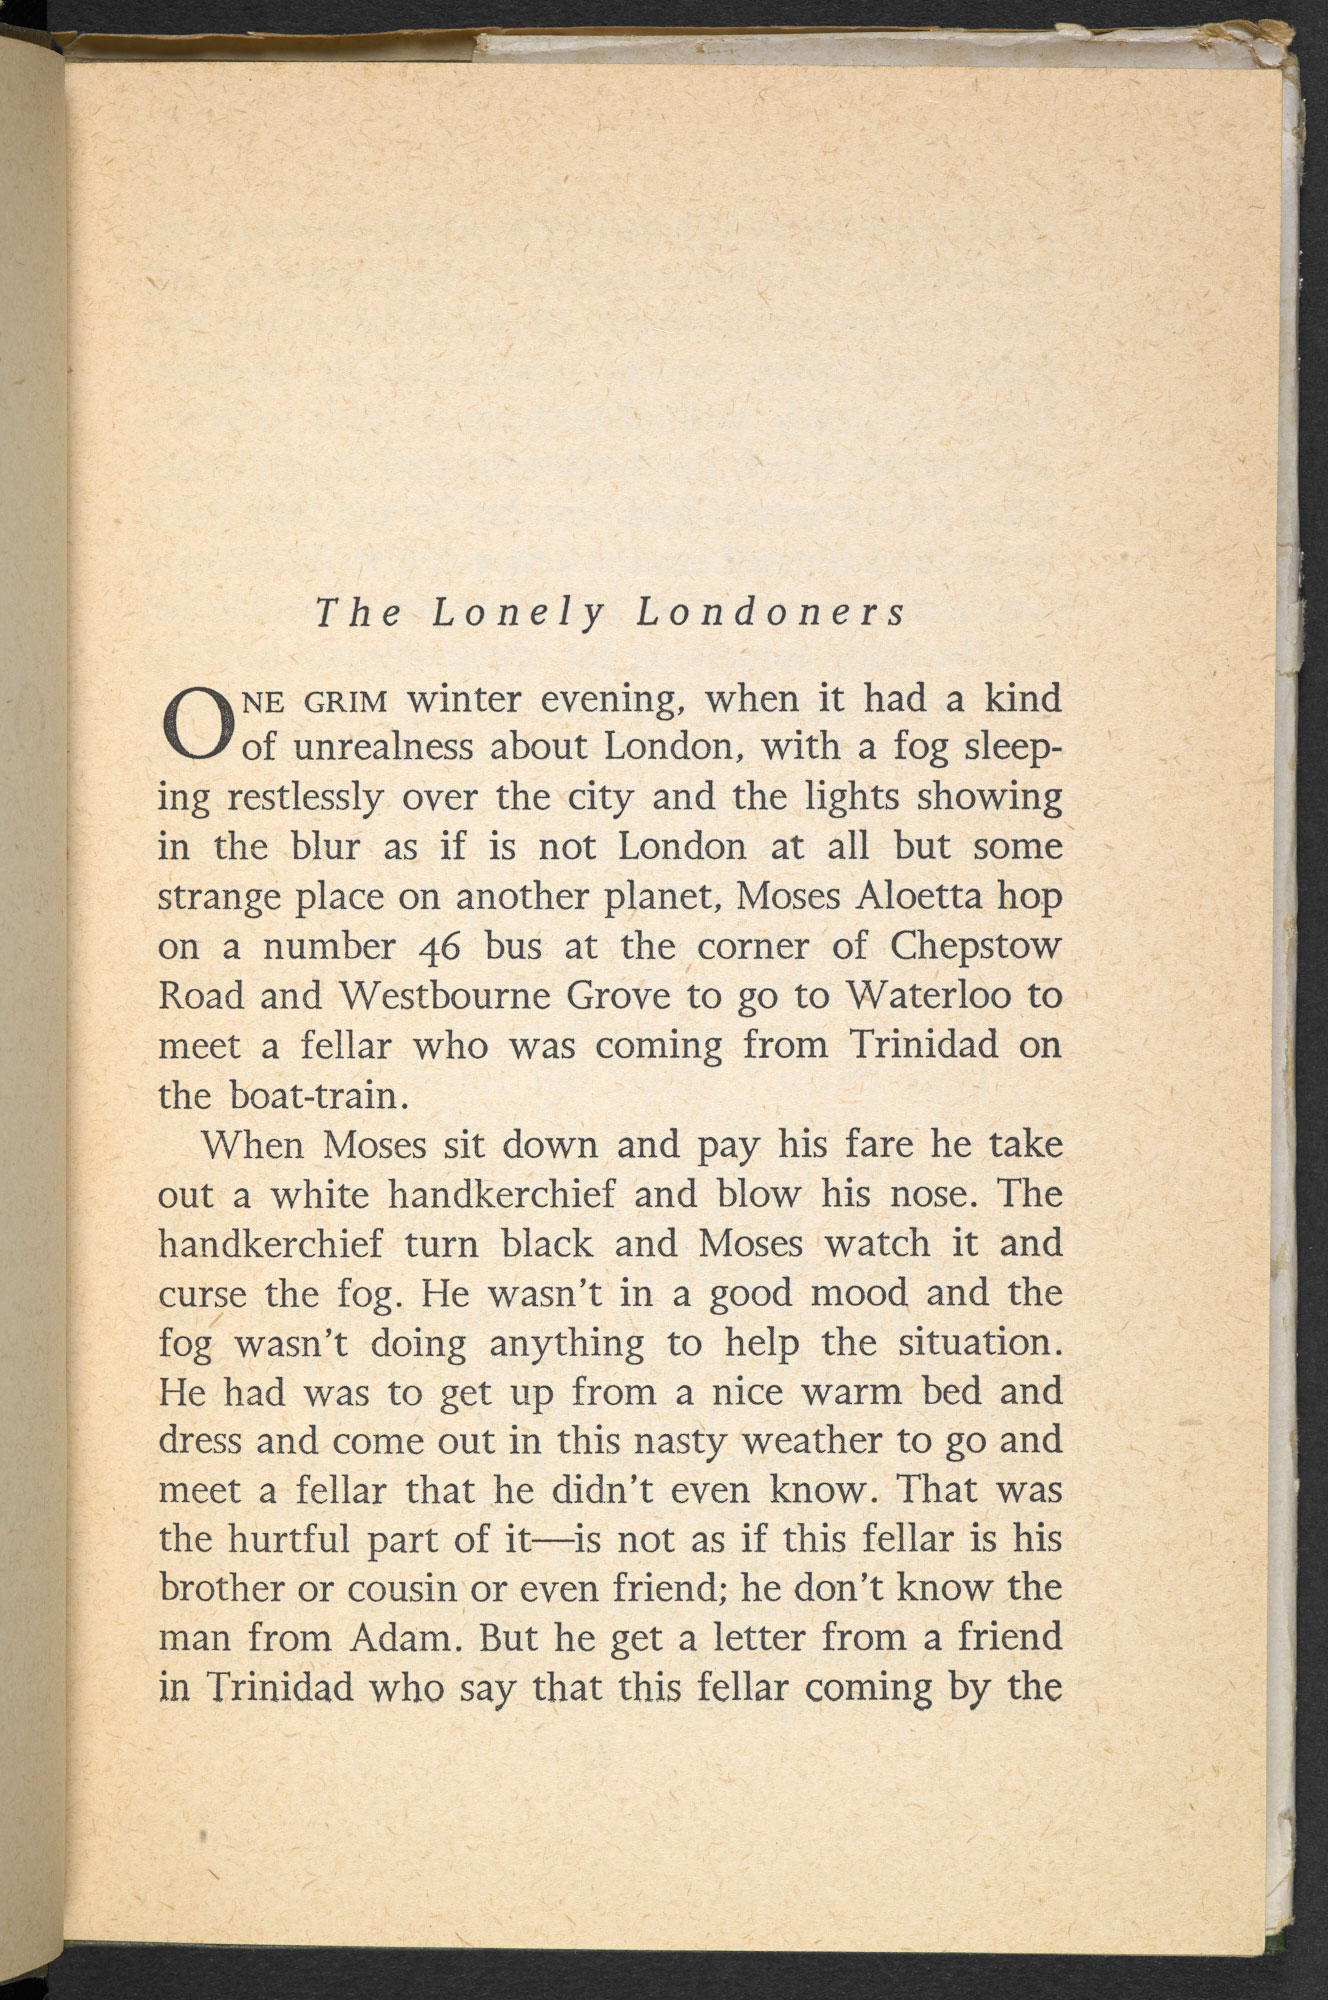 Page 8, opening scene from the first edition of The Lonely Londoners by Samuel Selvon